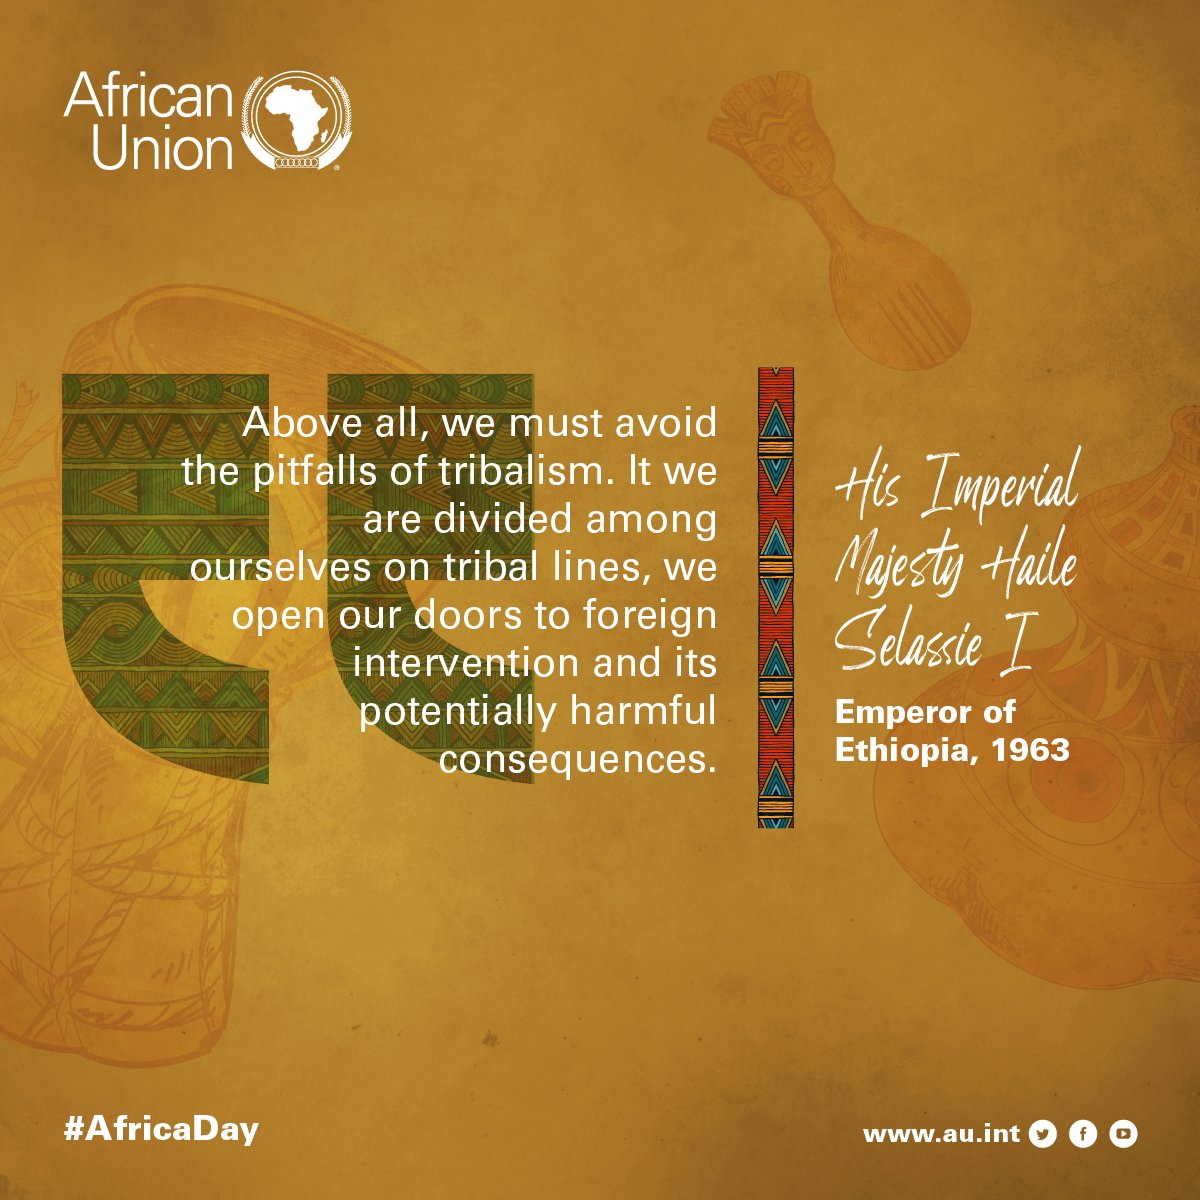 Celebrating #AfricaDay quote is from the speech by#HaileSelassieof#Ethiopiamade at the founding of the #AfricanUnion on 25thMay 1963Read the full speeches made in 1963 onau.int/en/overview